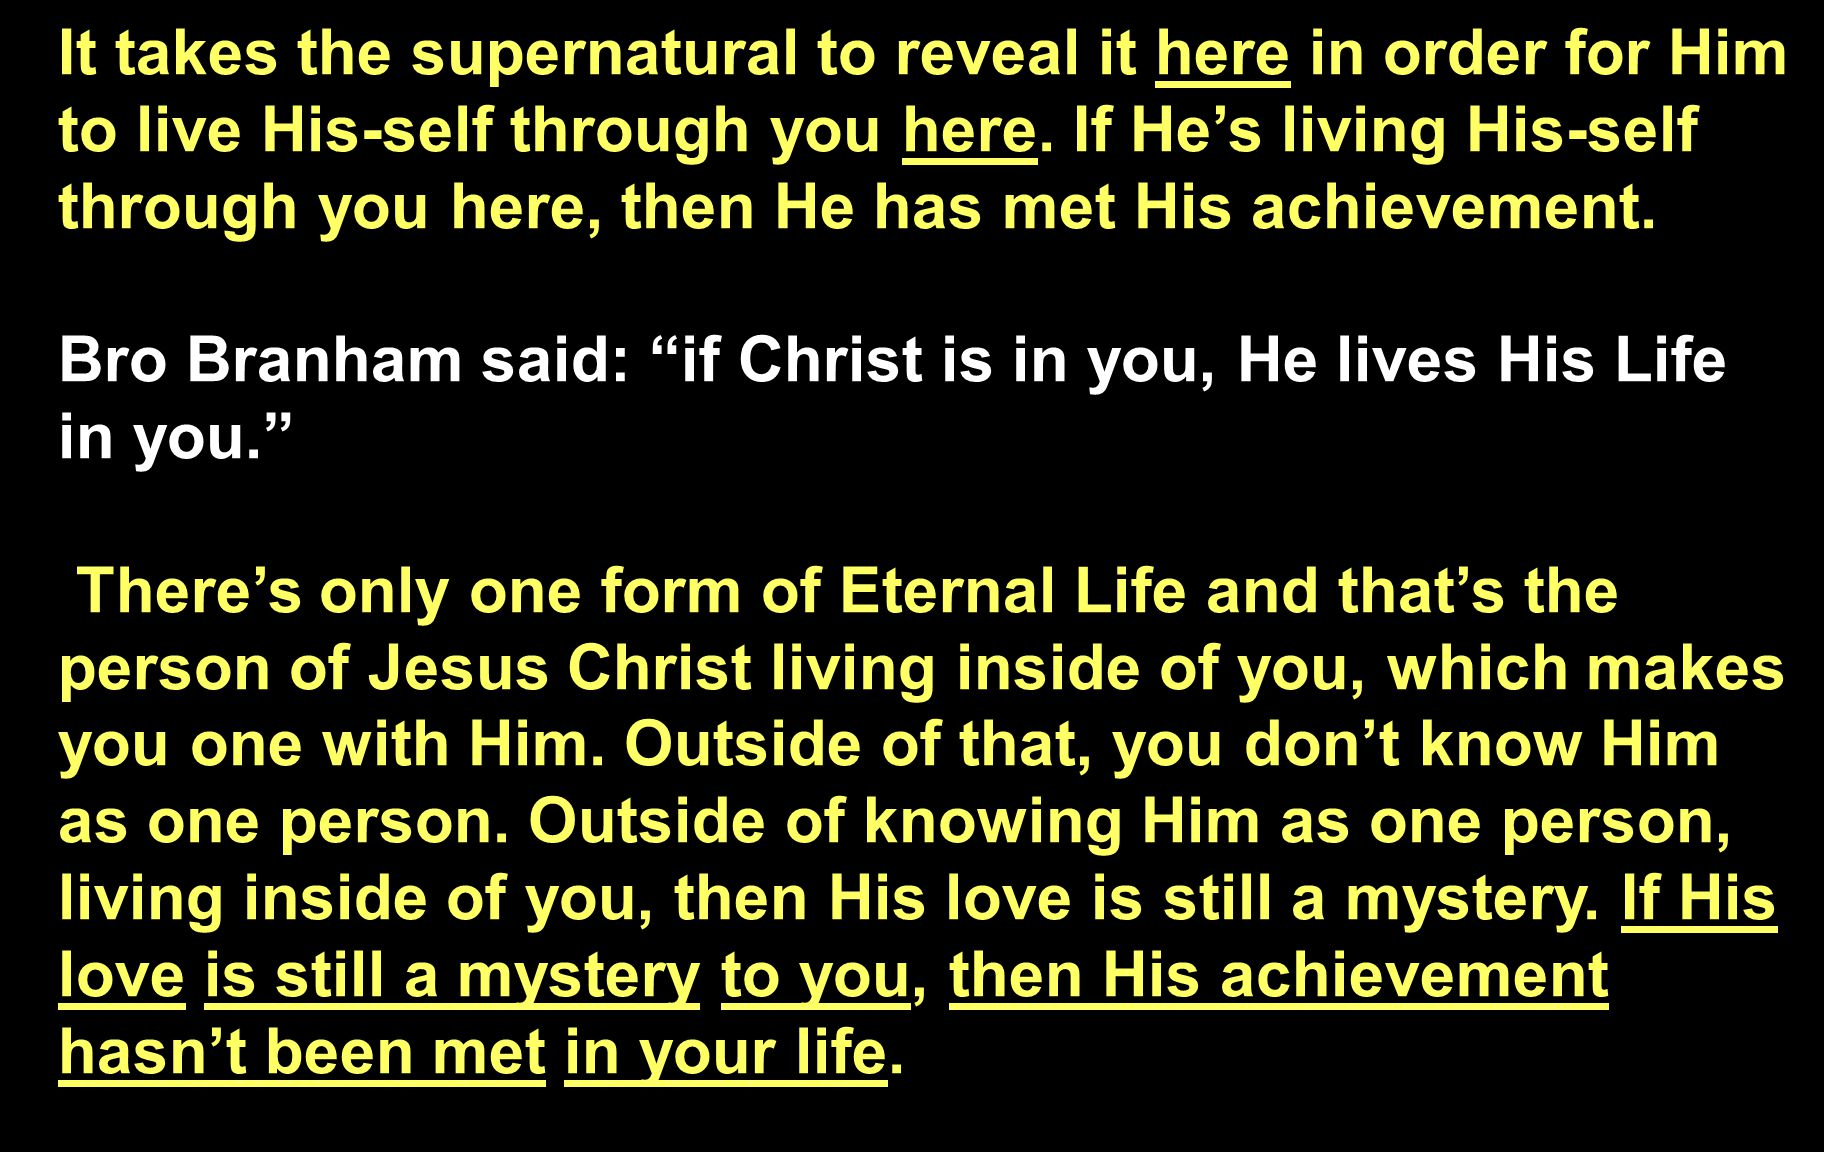 It takes the supernatural to reveal it here in order for Him to live His-self through you here. If He's living His-self through you here, then He has